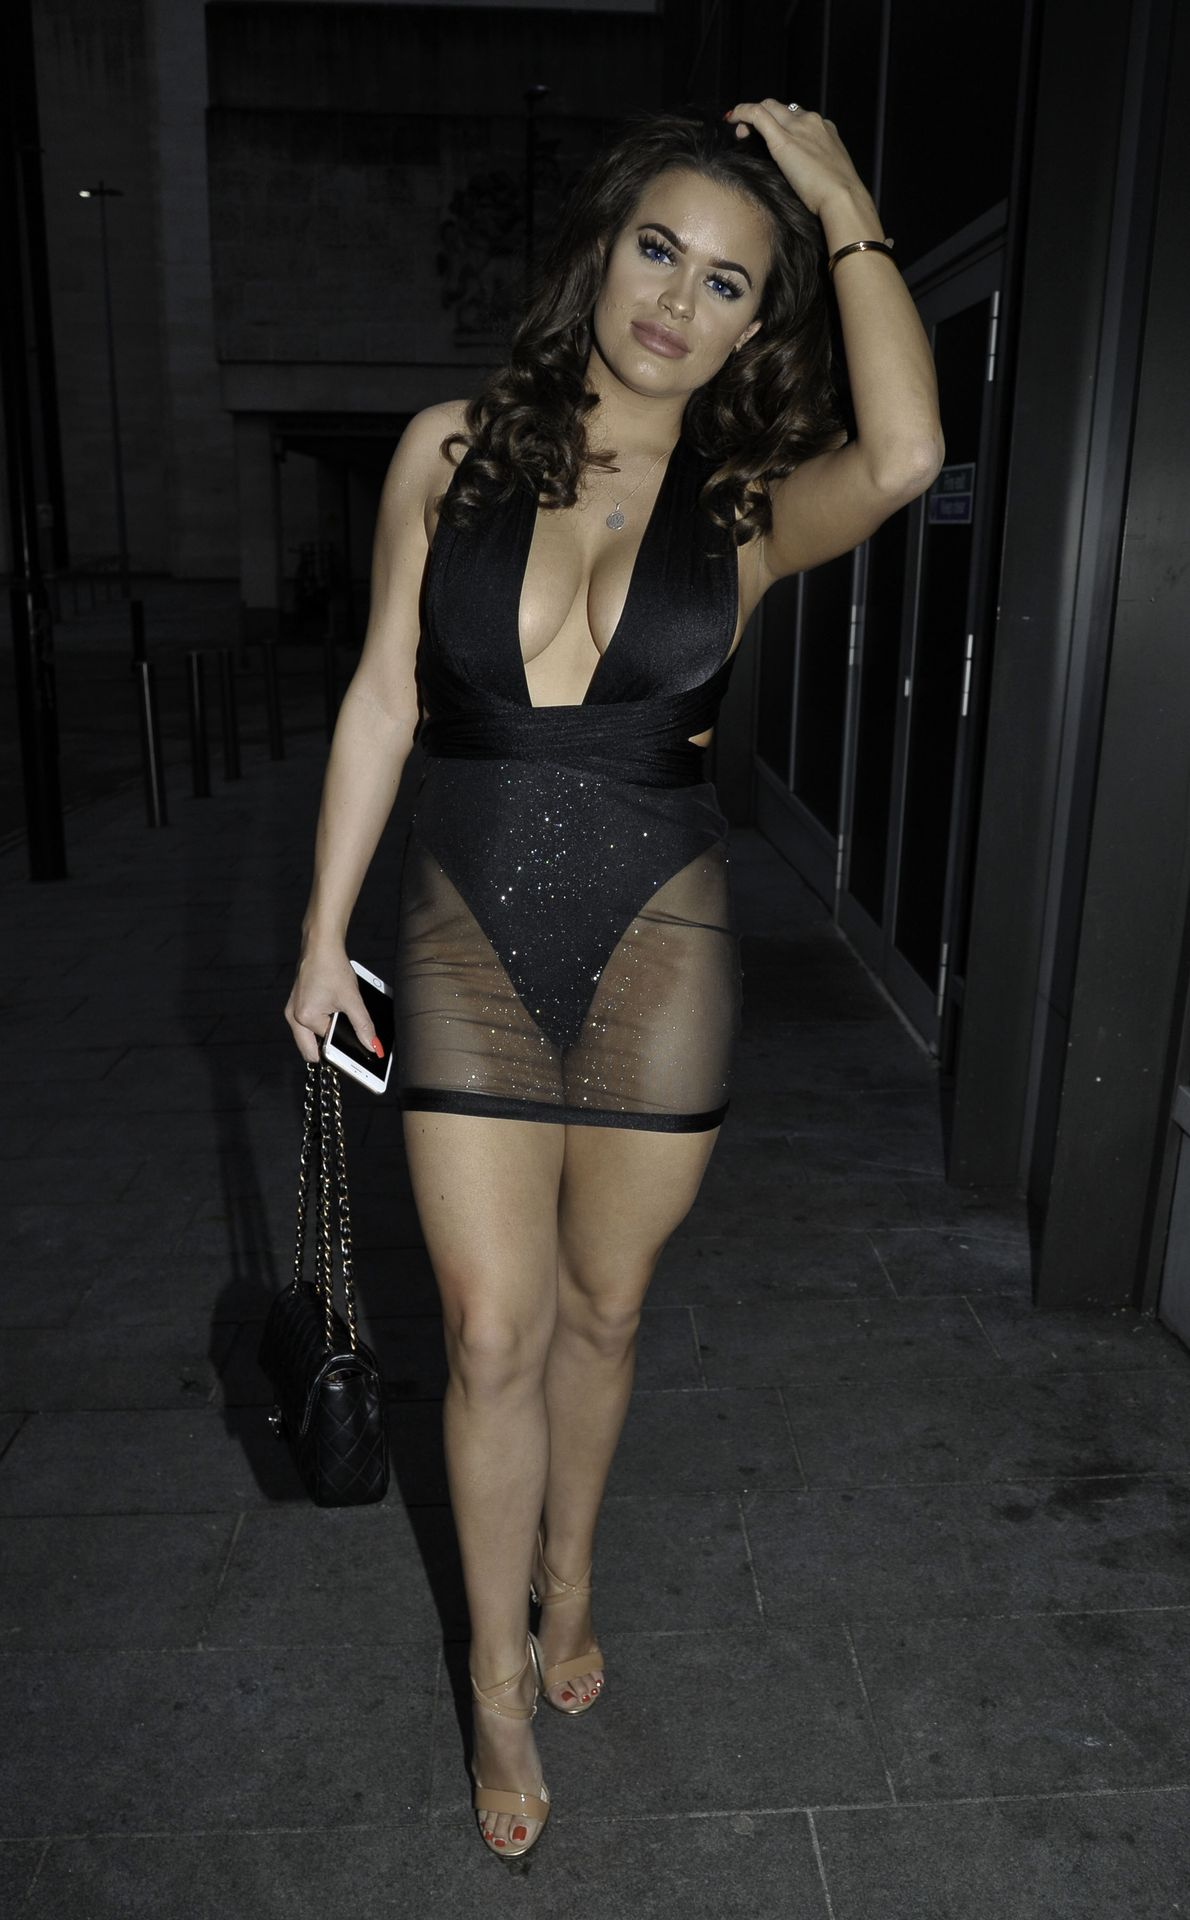 Rhianne Saxby & Sarah Longbottom Look Hot In Manchester 0019